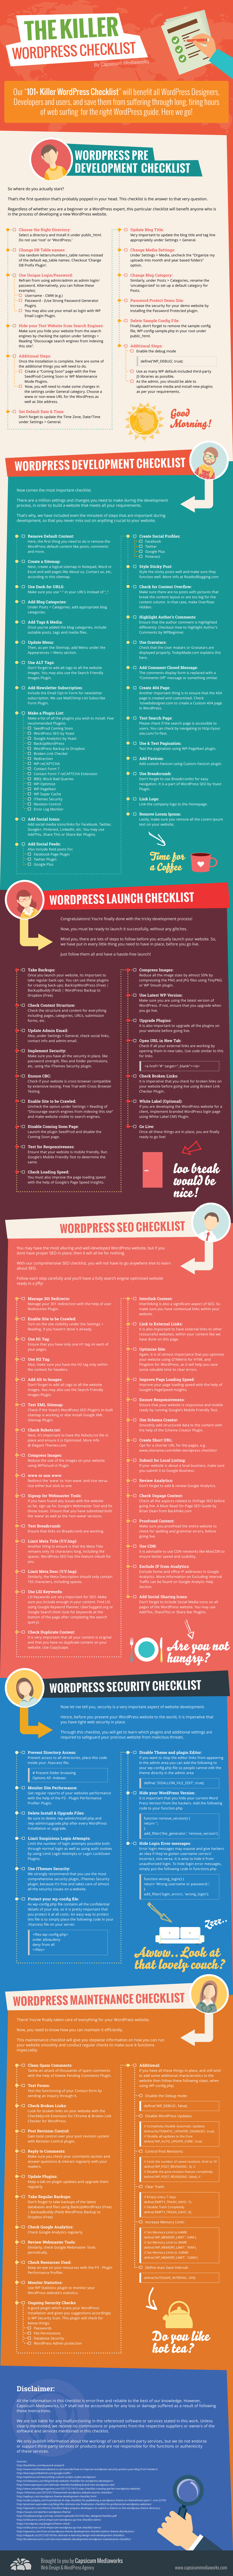 Checklist: How To Get Going On #WordPress #blogging #infographic